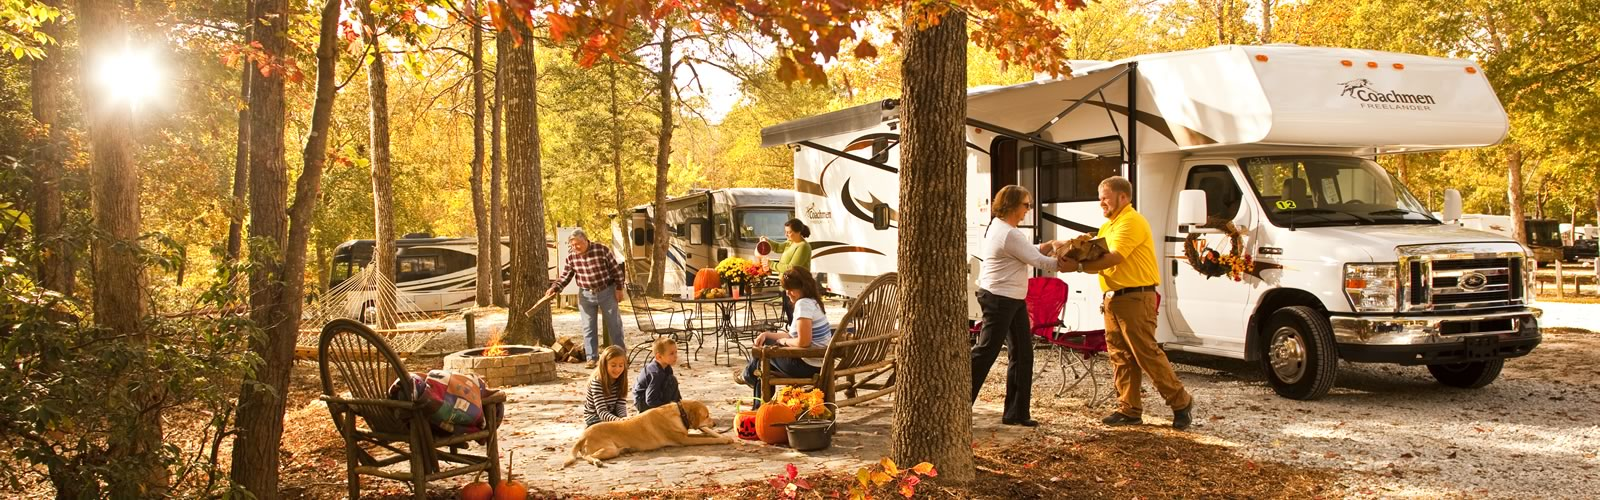 Extended camping season - when you camp in your RV you extend your camping season even longer. The RV heater lets you start your camping season earlier in the year and stay longer into the fall